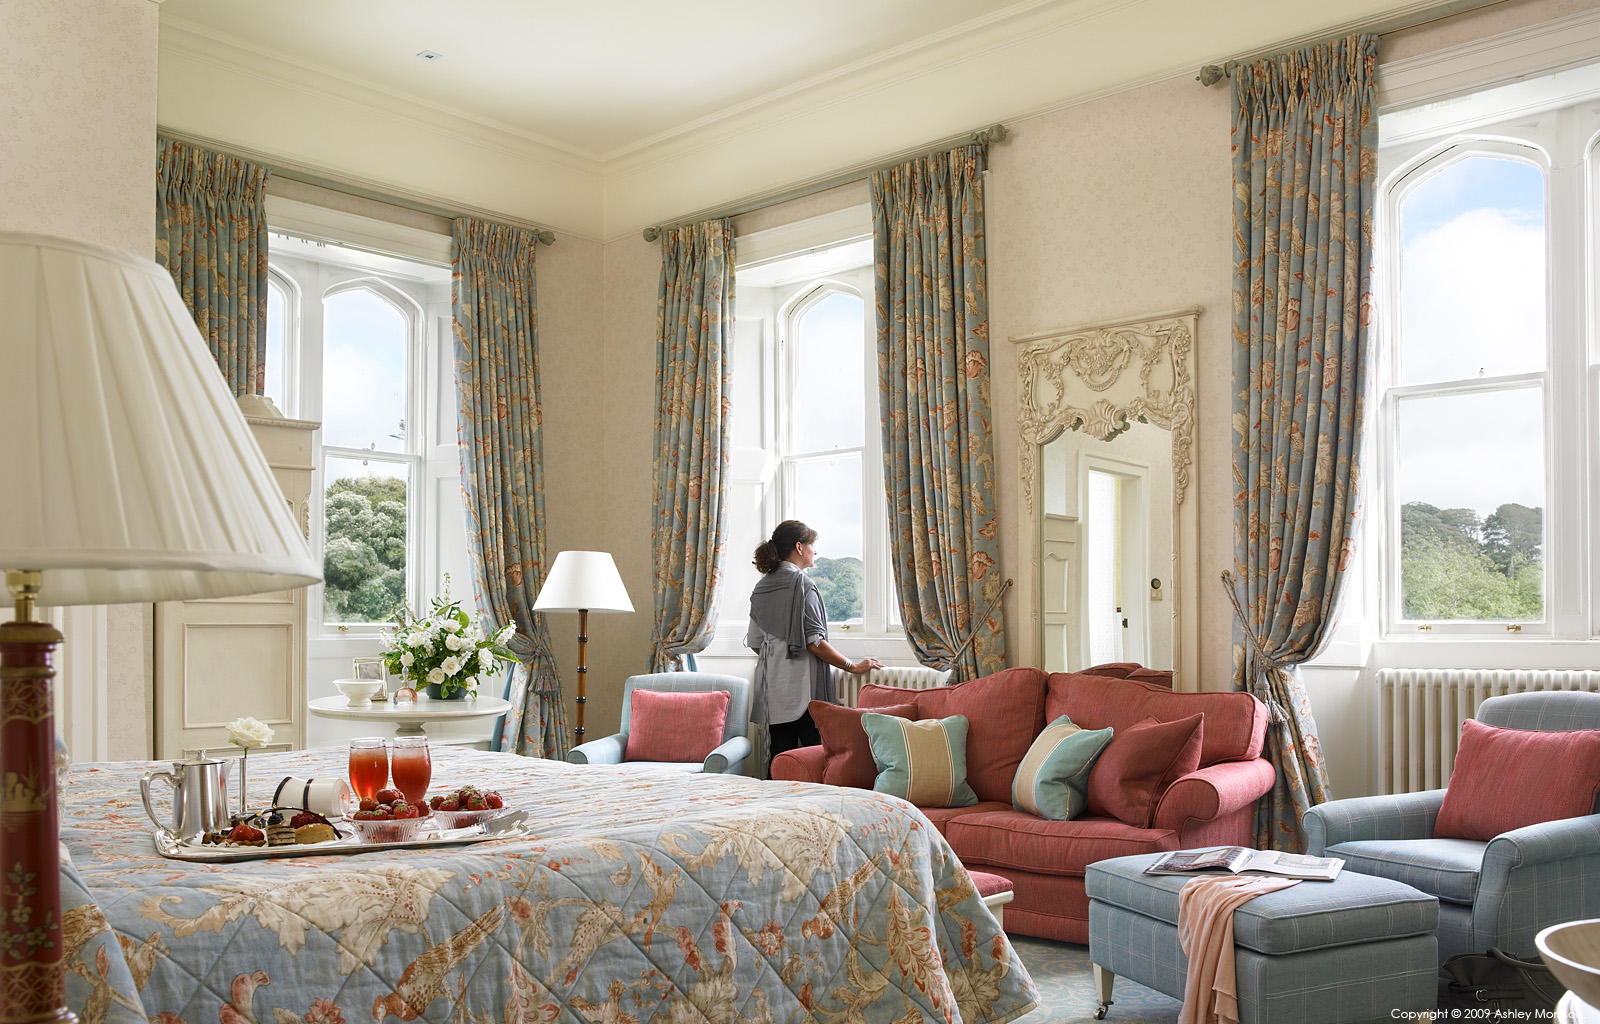 Tower bedroom suite at Dromoland Castle in County Clare by Ashley Morrison.